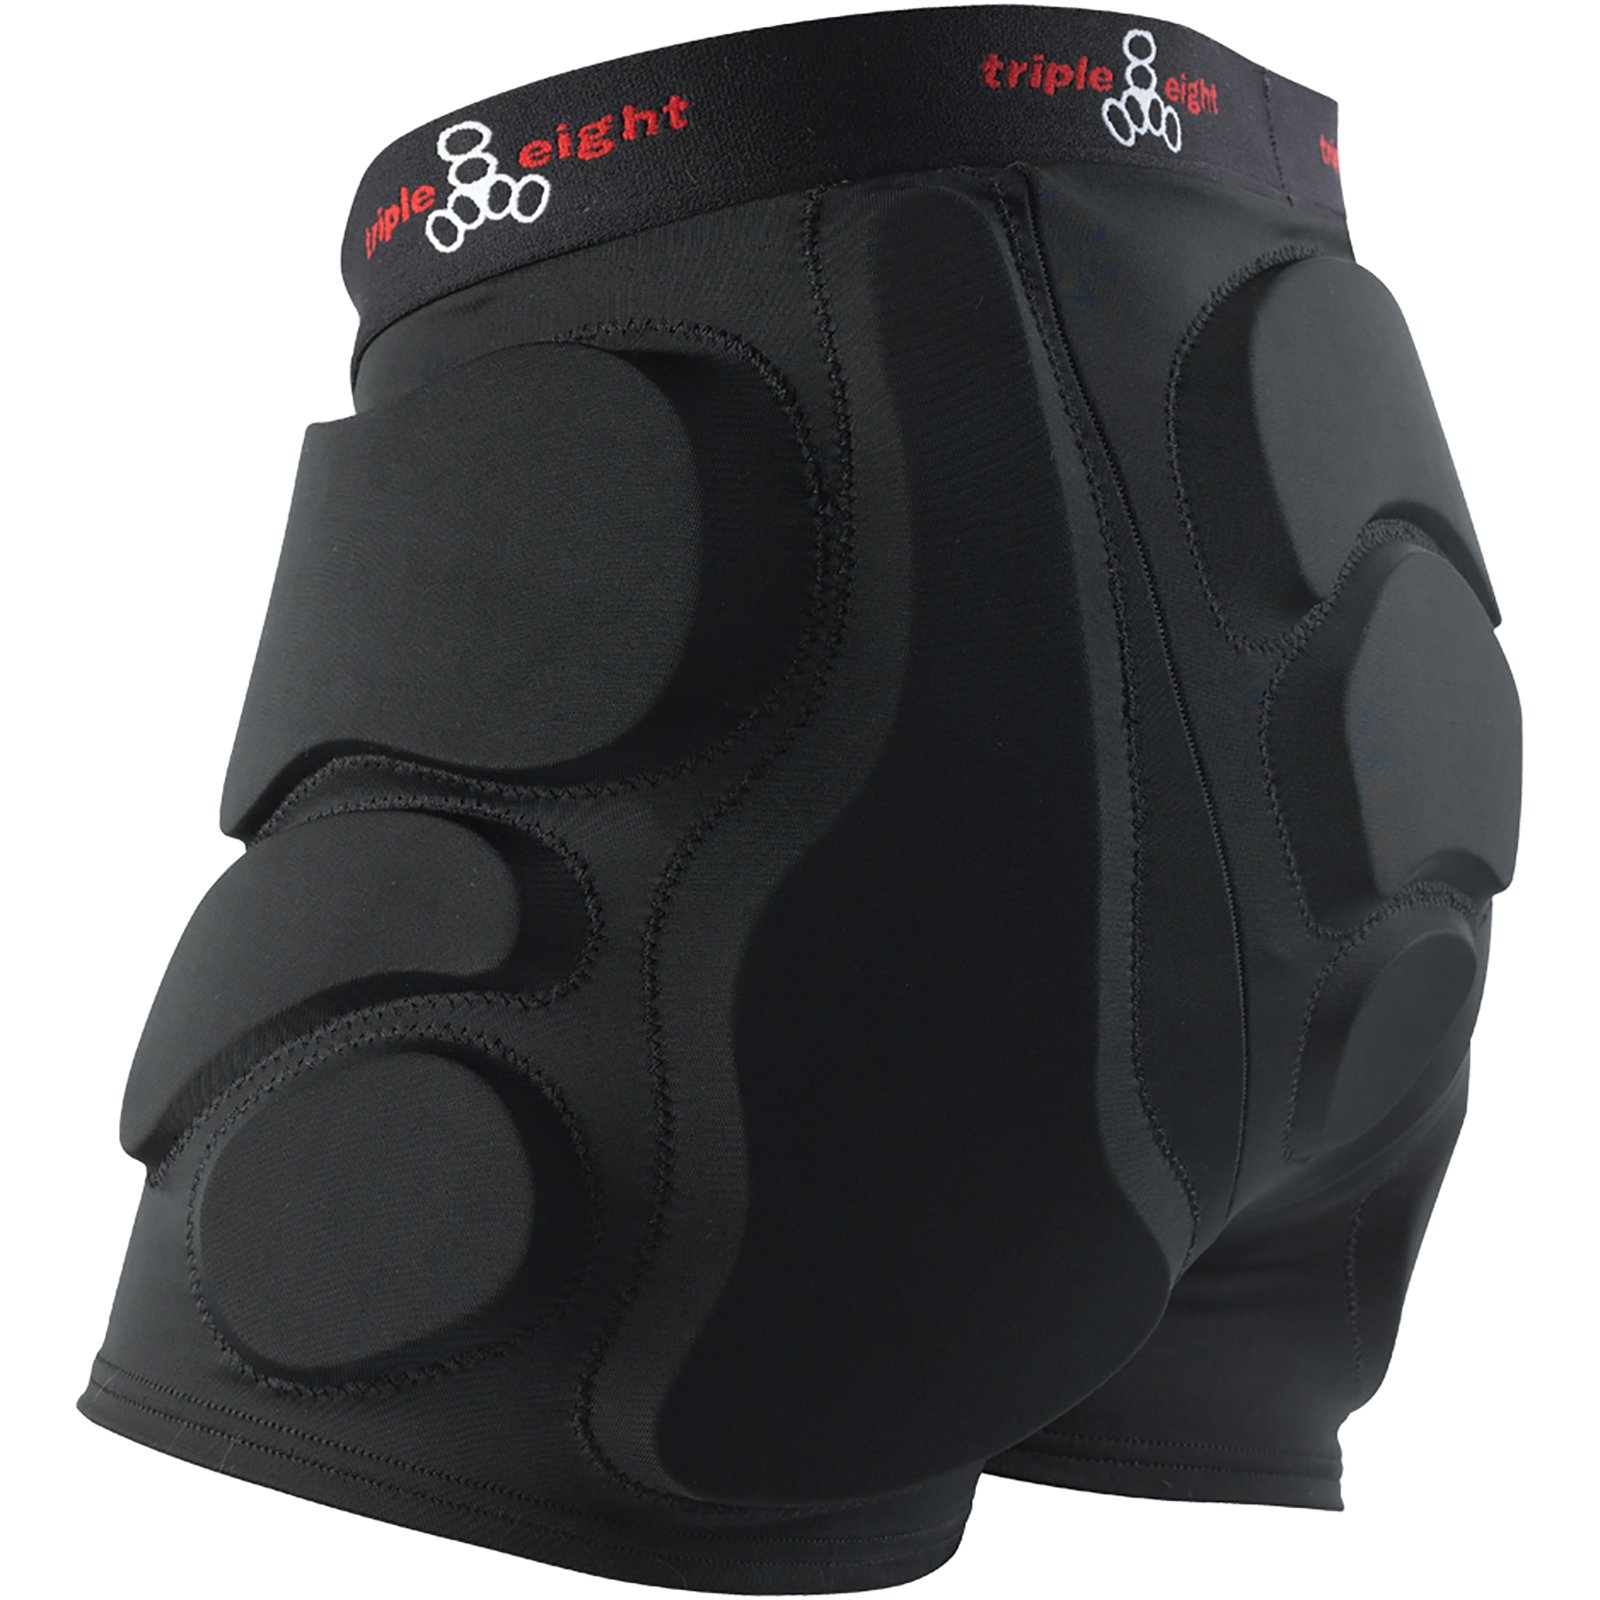 Triple 8 Roller Derby Bumsaver Black Hip Pads - X-Small/Youth by Triple Eight